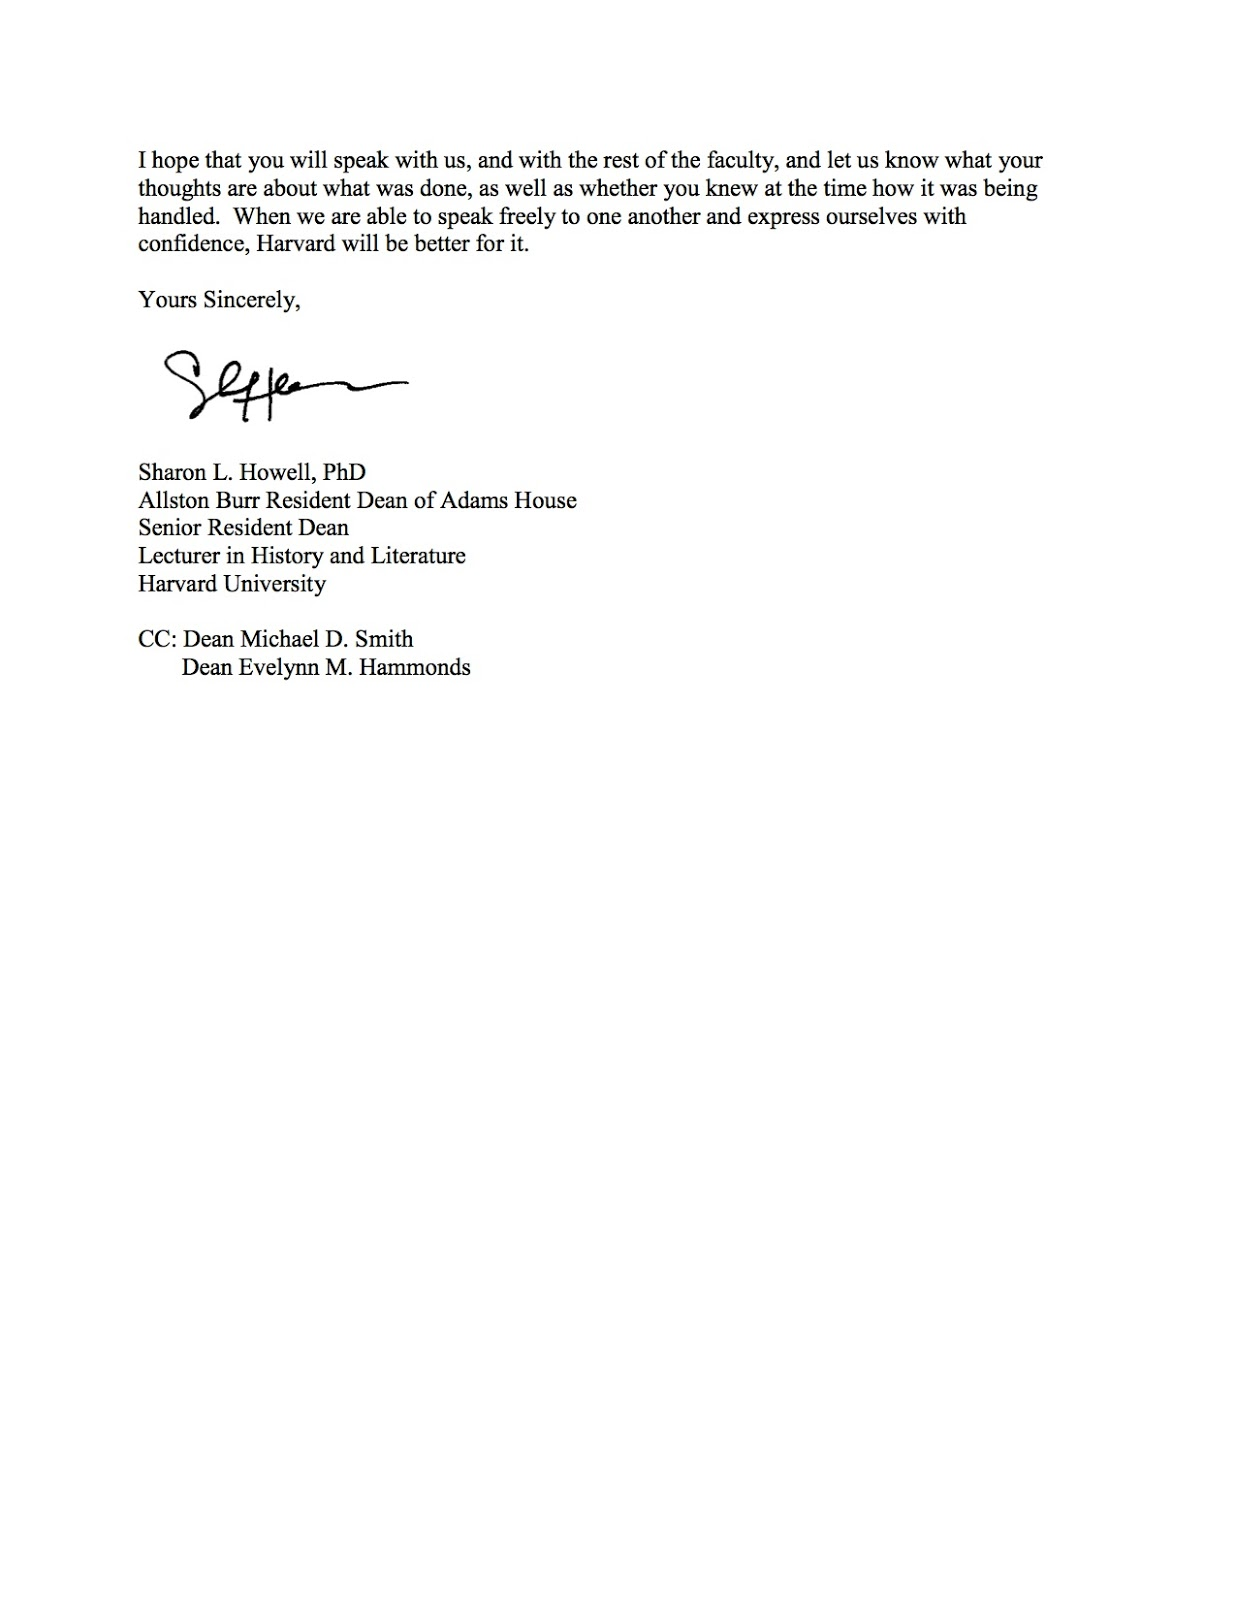 Two Weeks Notice Letter Letter To Drew Faust  2 Weeks Notice Letter Format